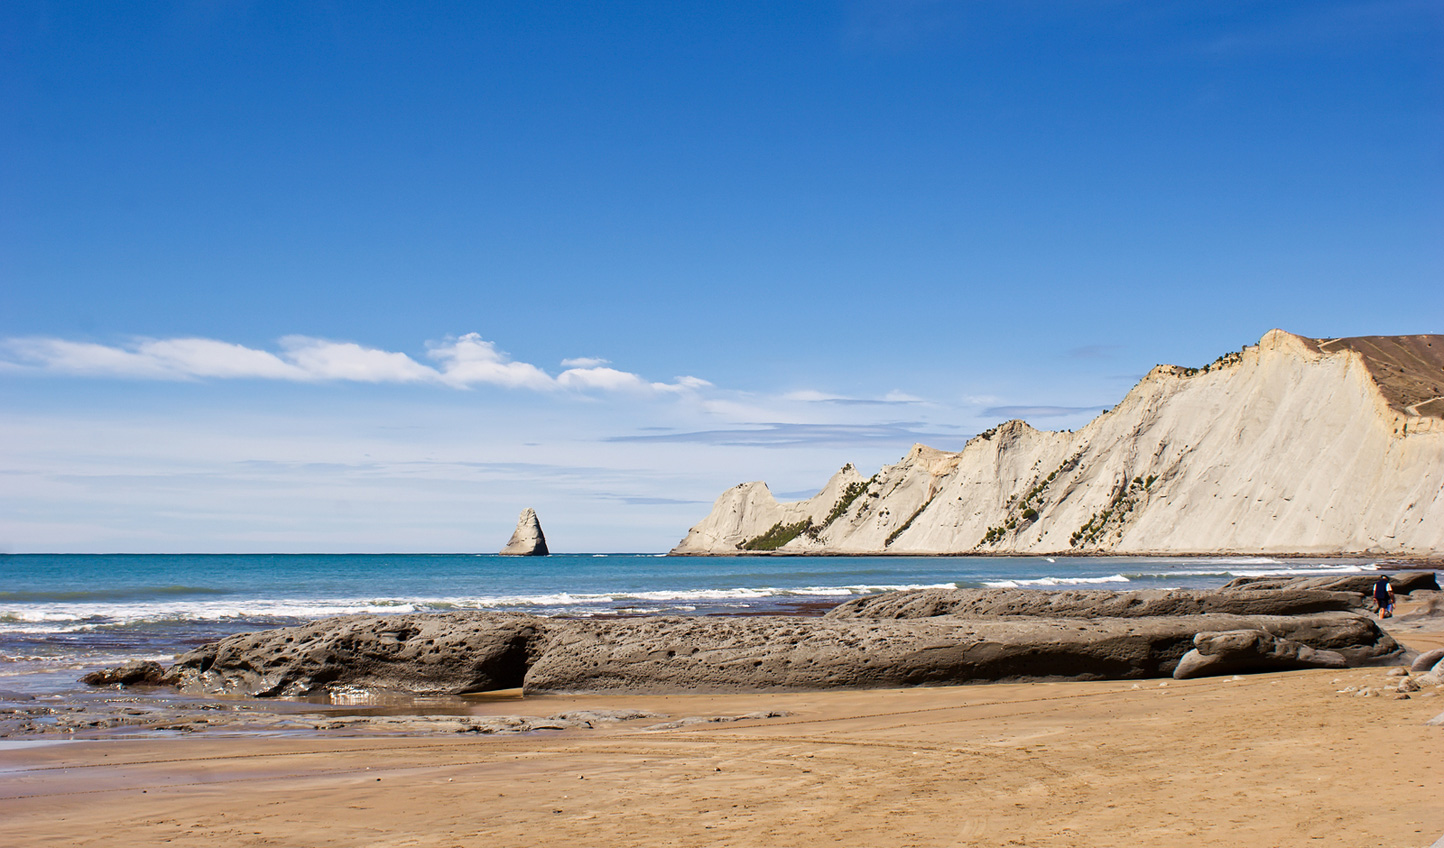 Take a stroll along the beach at Cape Kidnappers